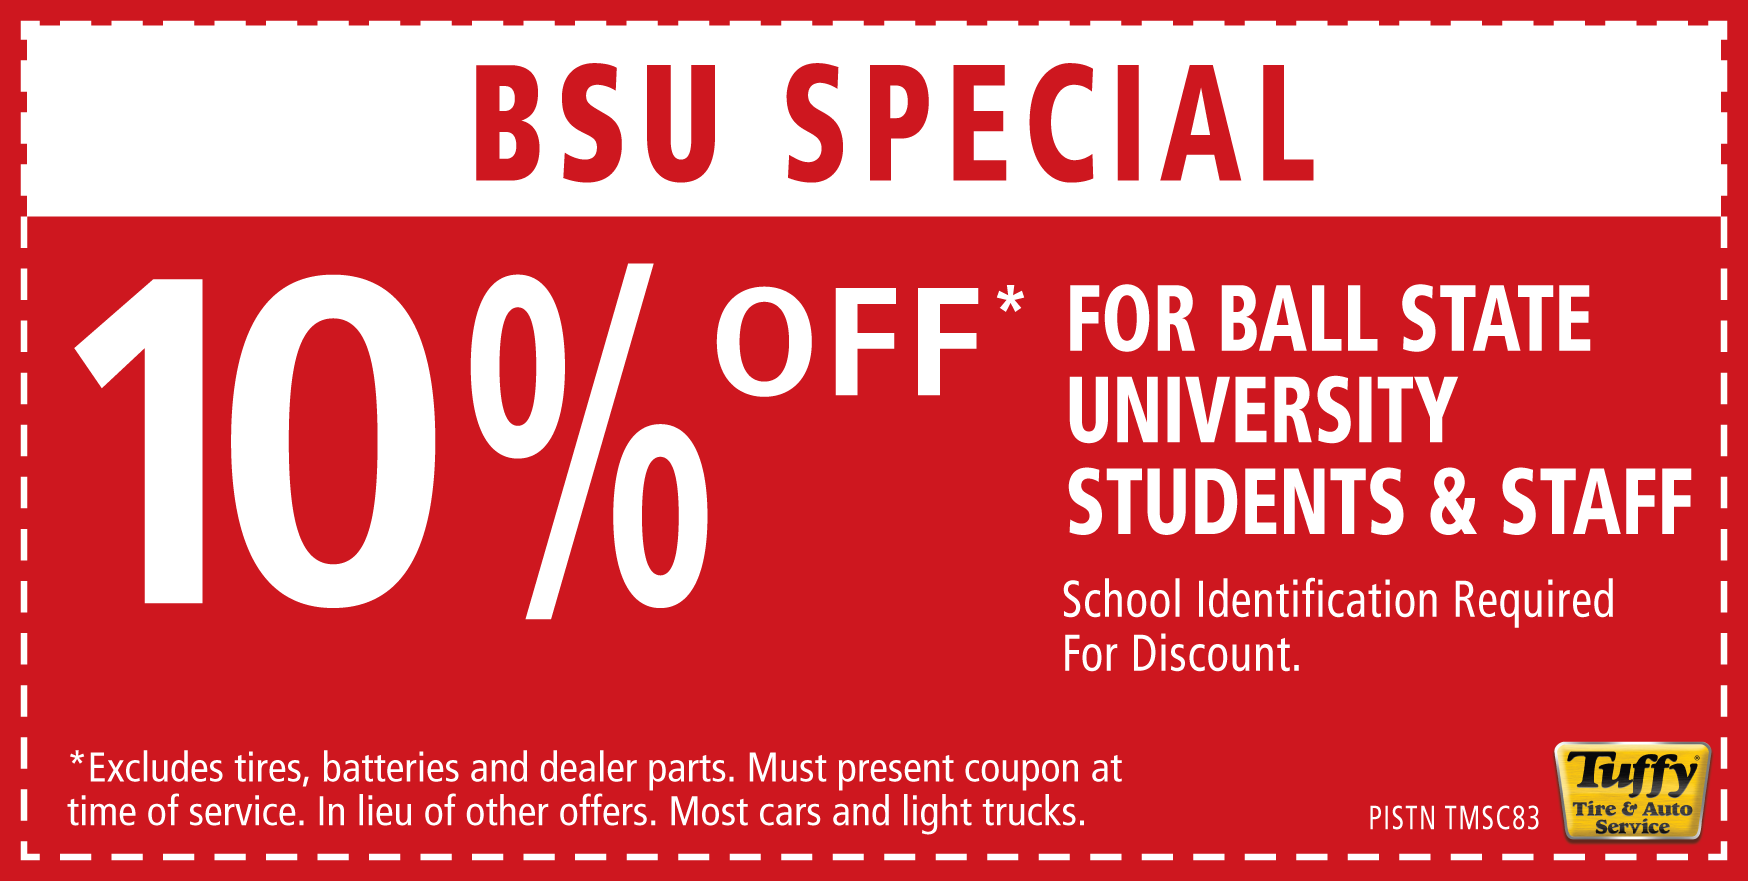 BSU Special 10% OFF (Students & Staff)